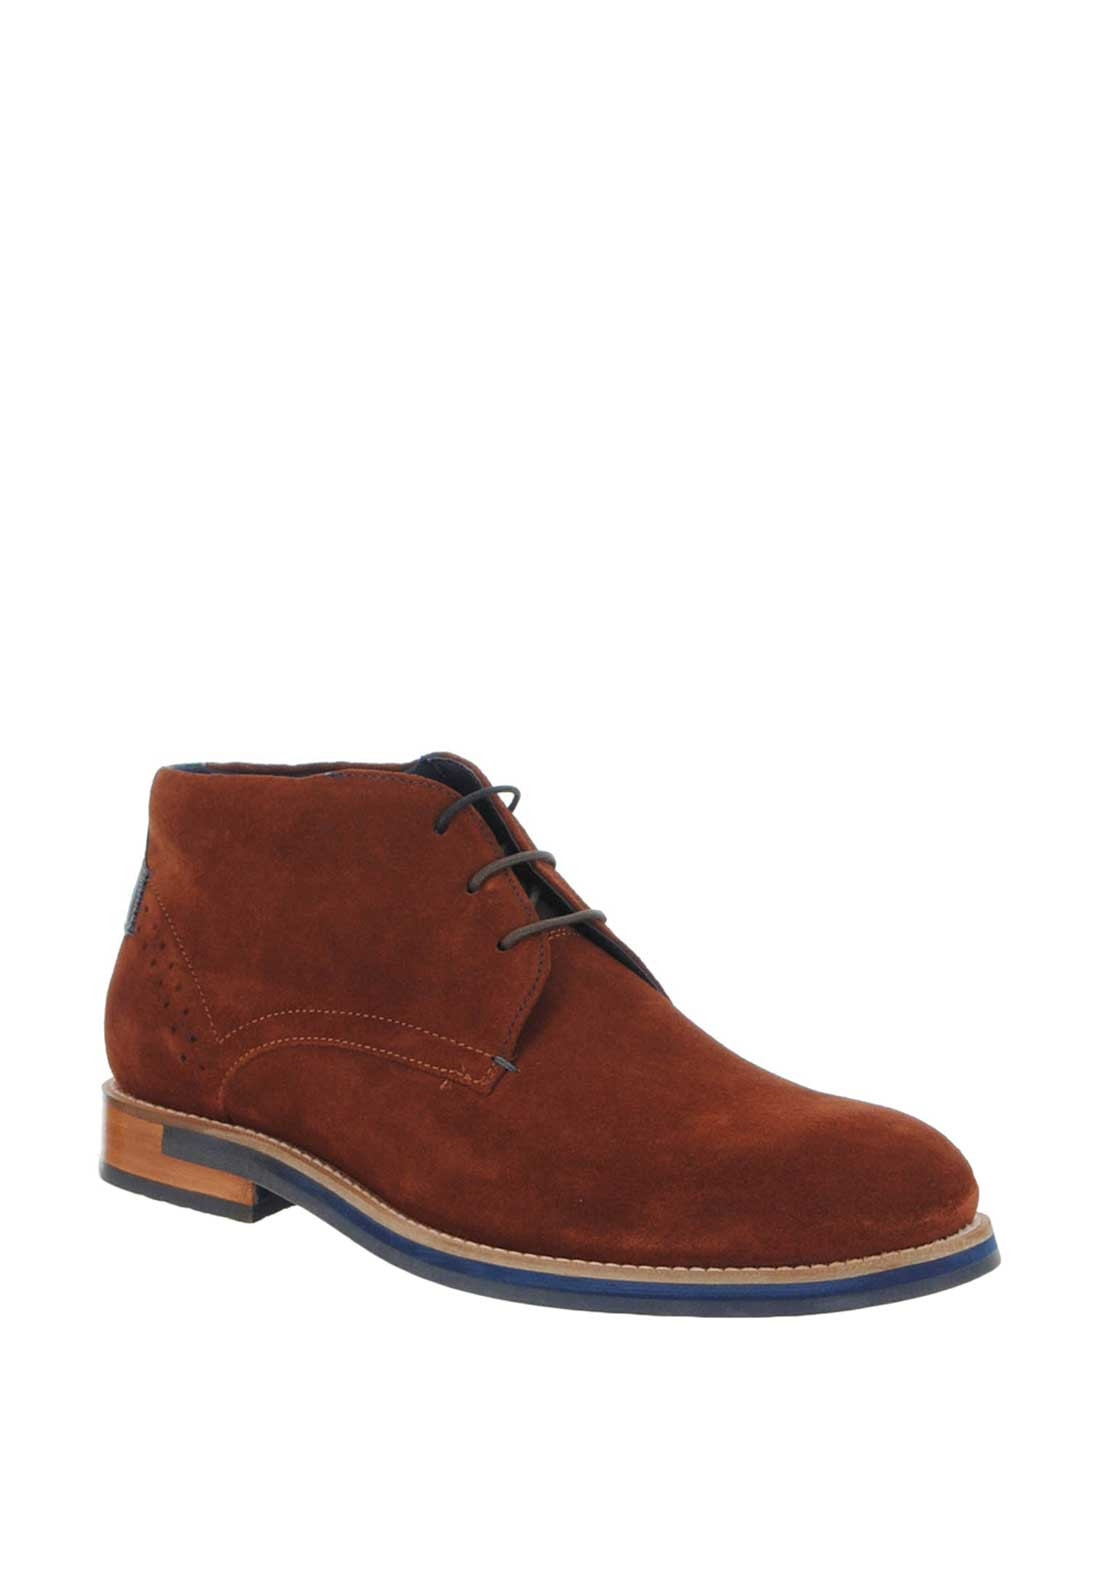 really cheap 2019 hot sale coupon codes Ted Baker Suede Dainnios Desert Boot, Dark Tan